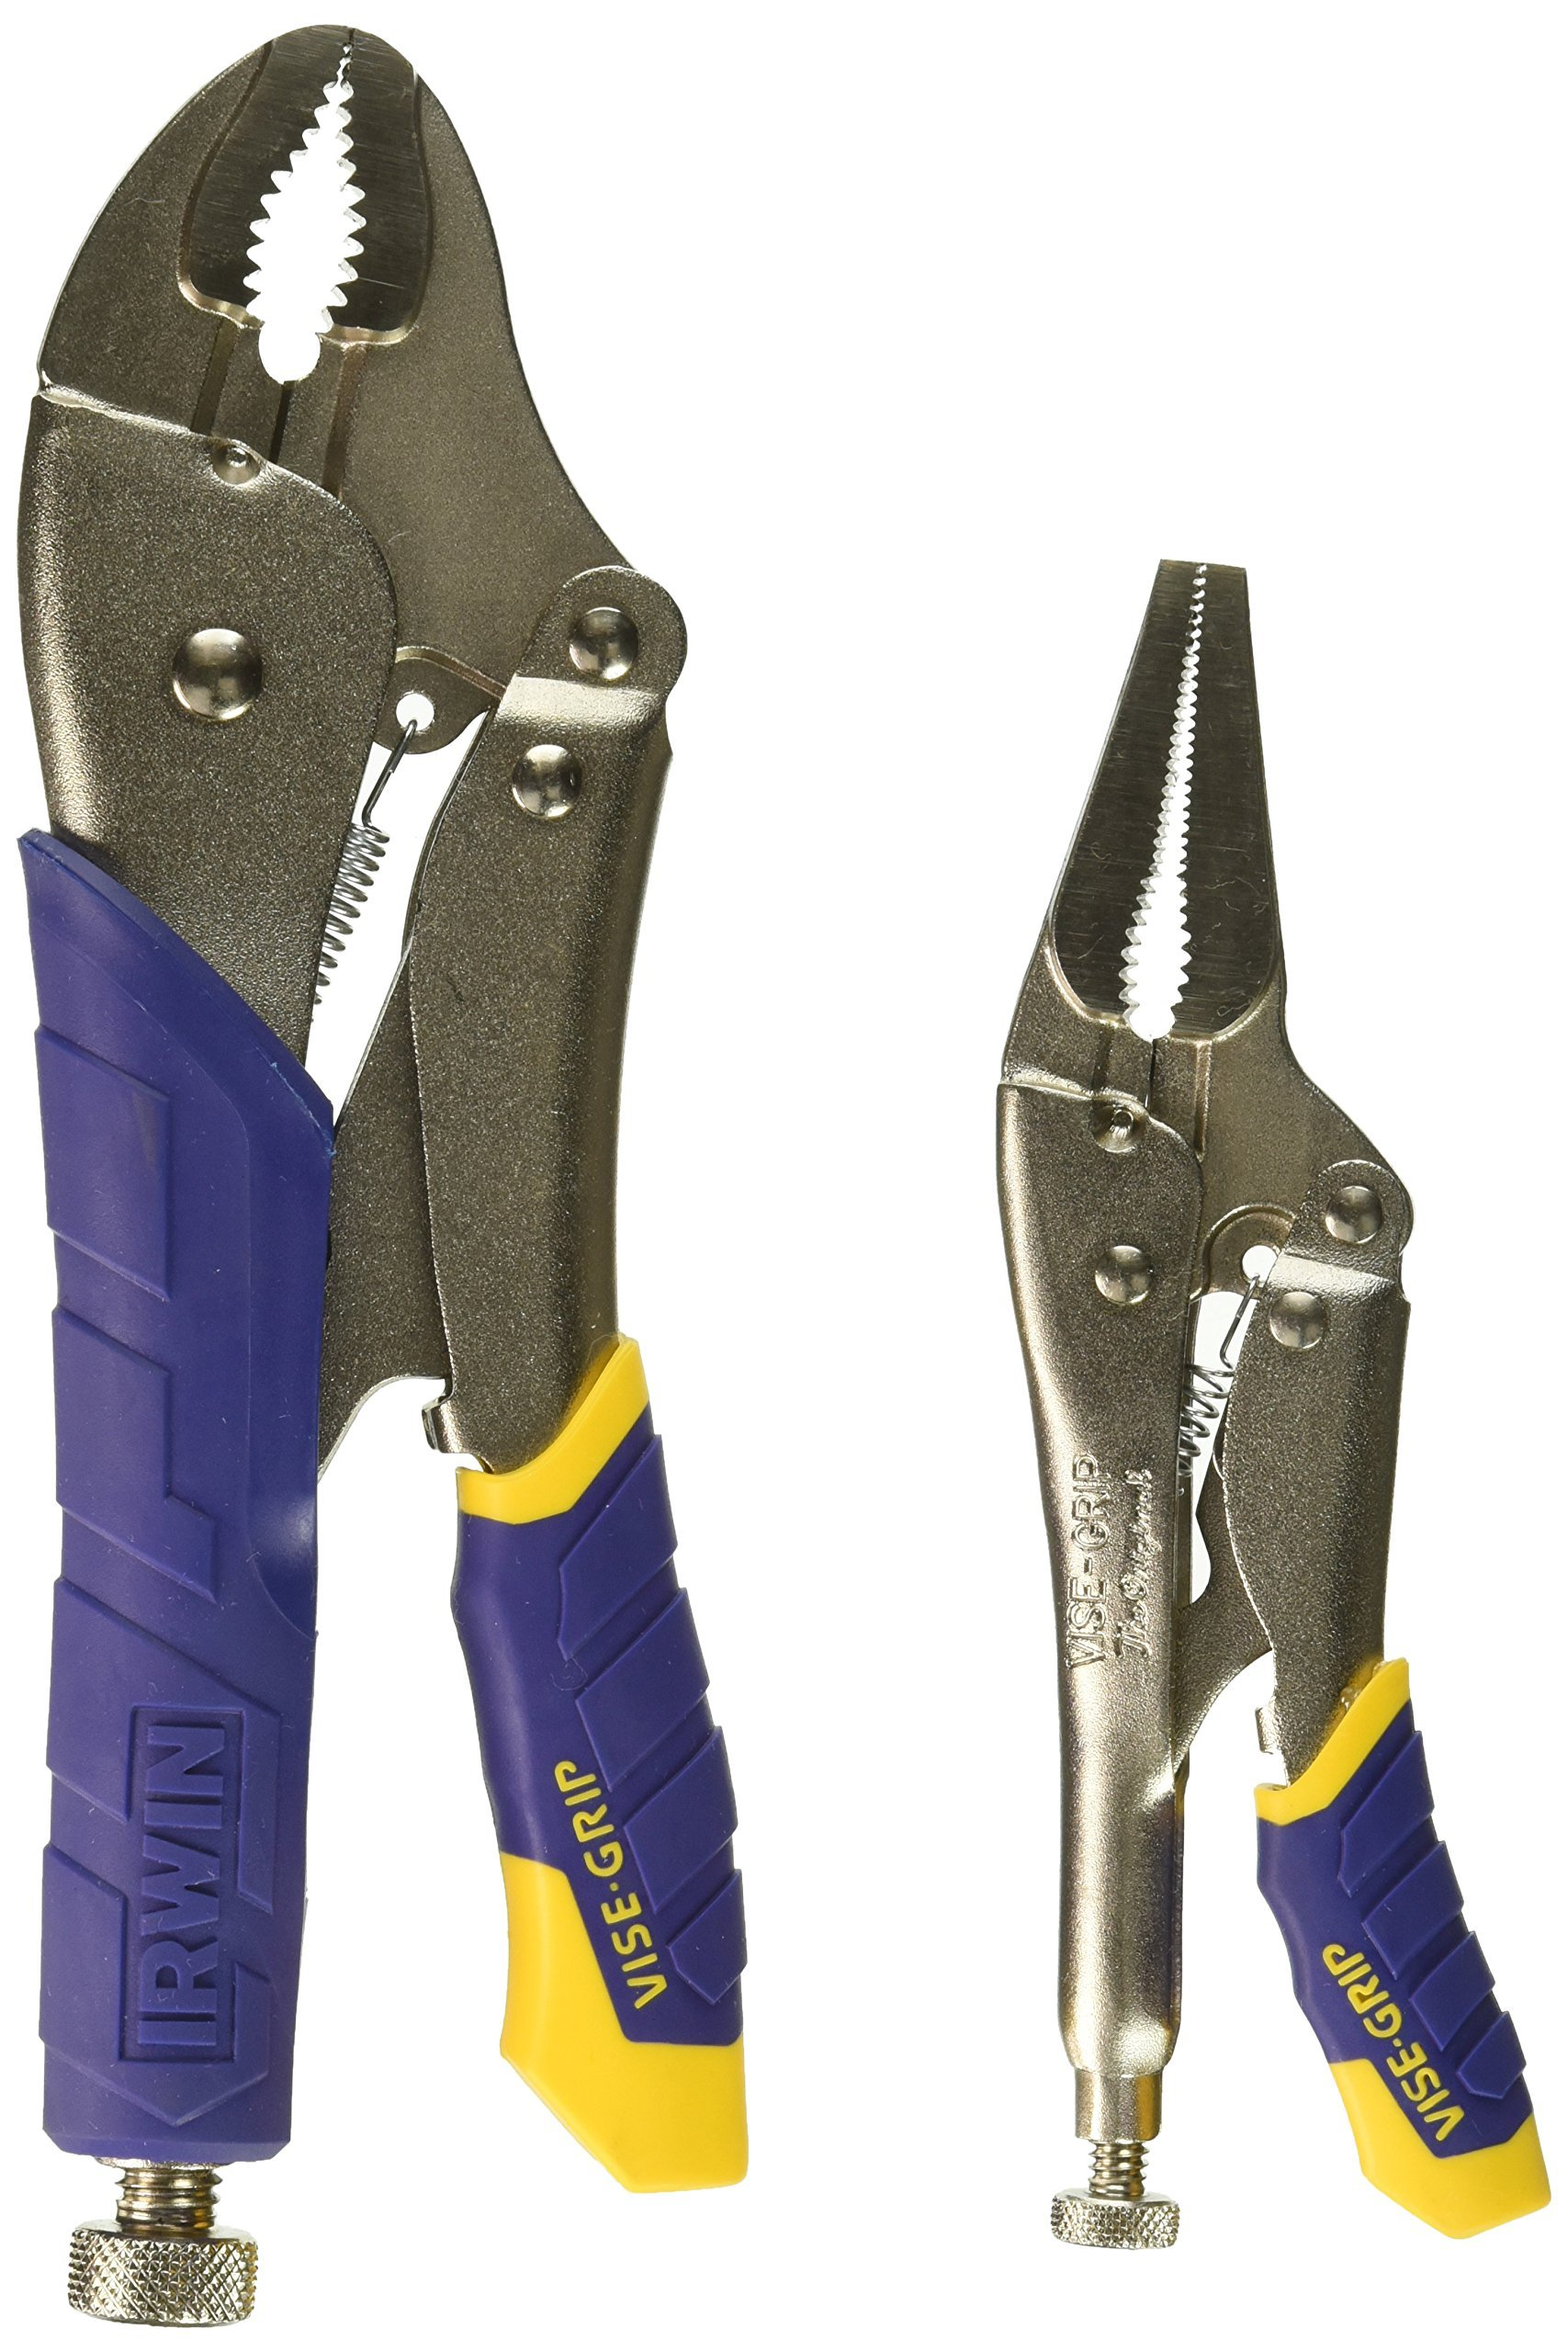 IRWIN INDUSTRIAL Tool 77T IRWIN INDUSTRIAL Fast-Release Long Nose Locking Pliers, 2-Piece Set by Irwin Tools